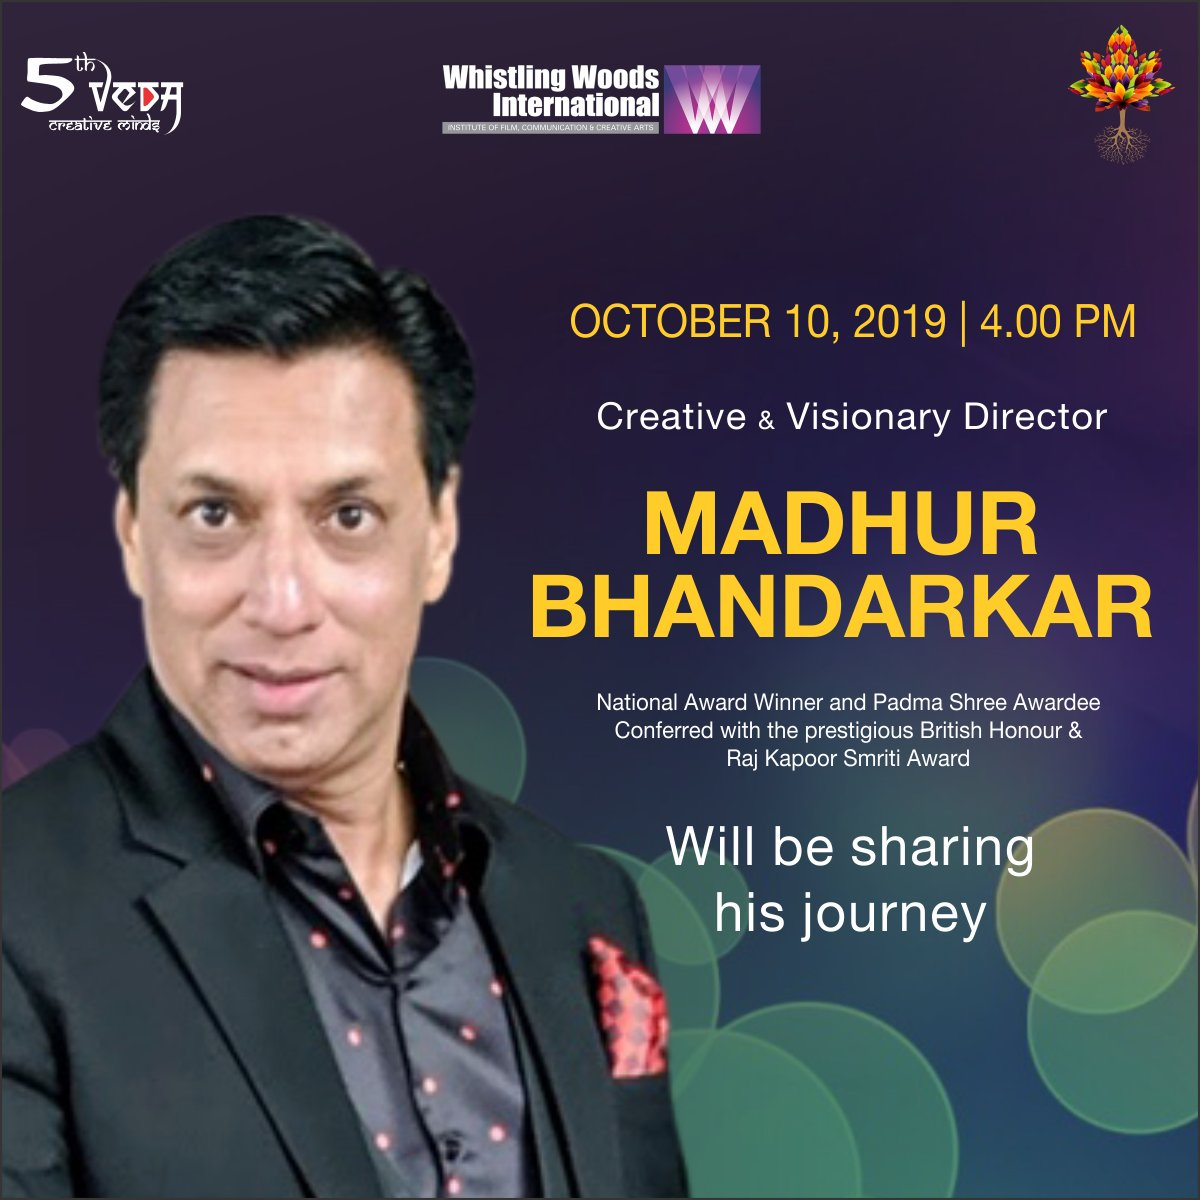 @imbhandarkar - the creative and visionary Director, will be conducting a 5th Veda session, exclusively for the students of WWI, on October 10, 2019. #DoWhatYouLove